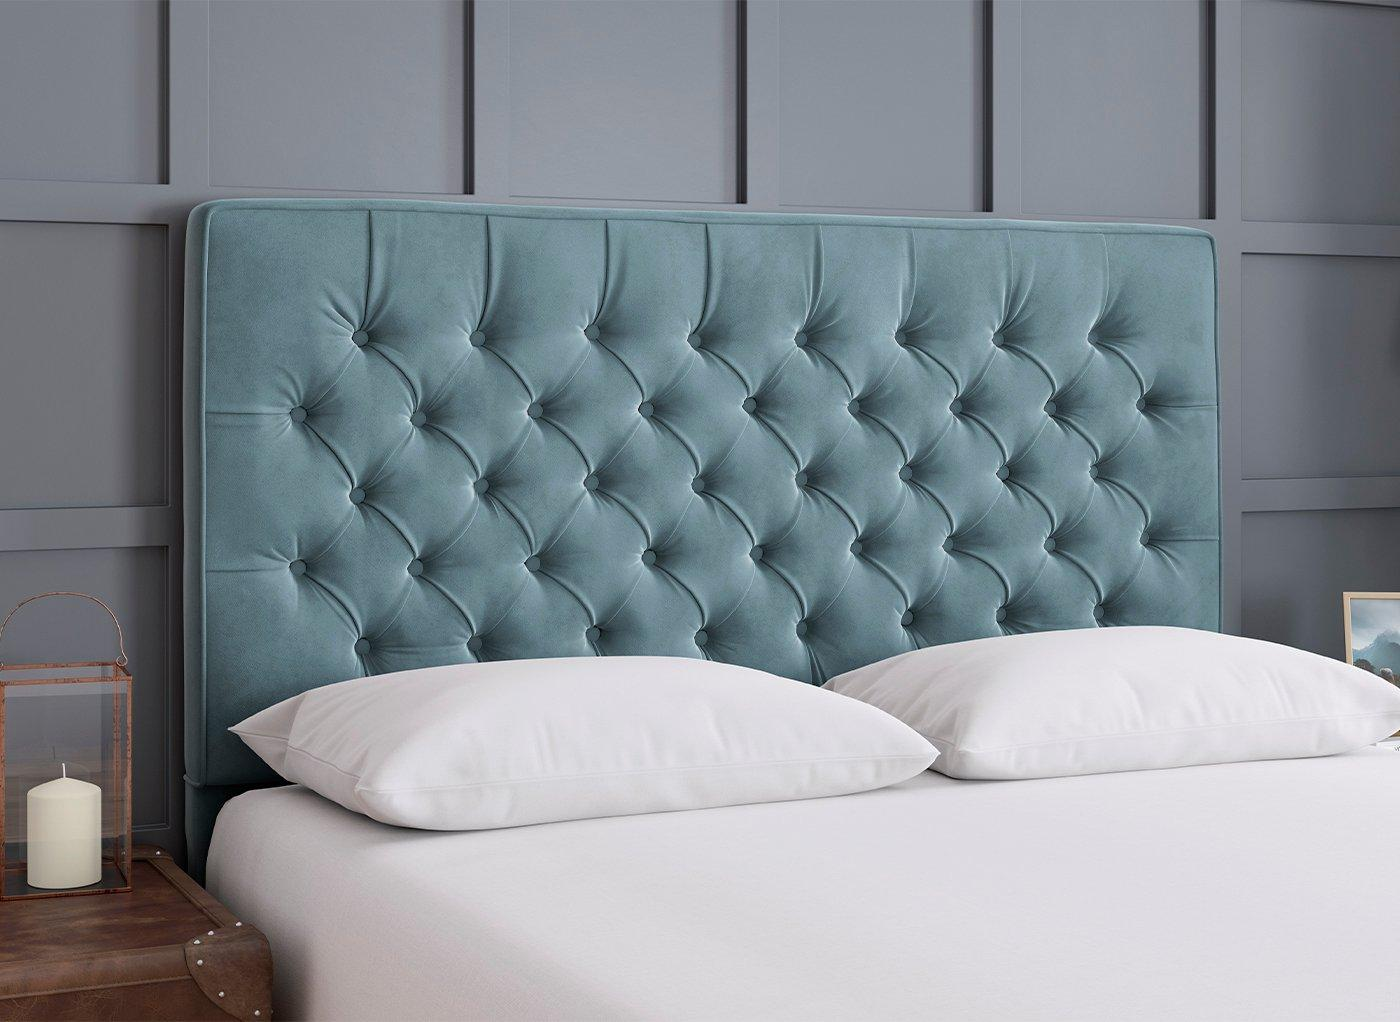 therapur-bracken-headboard